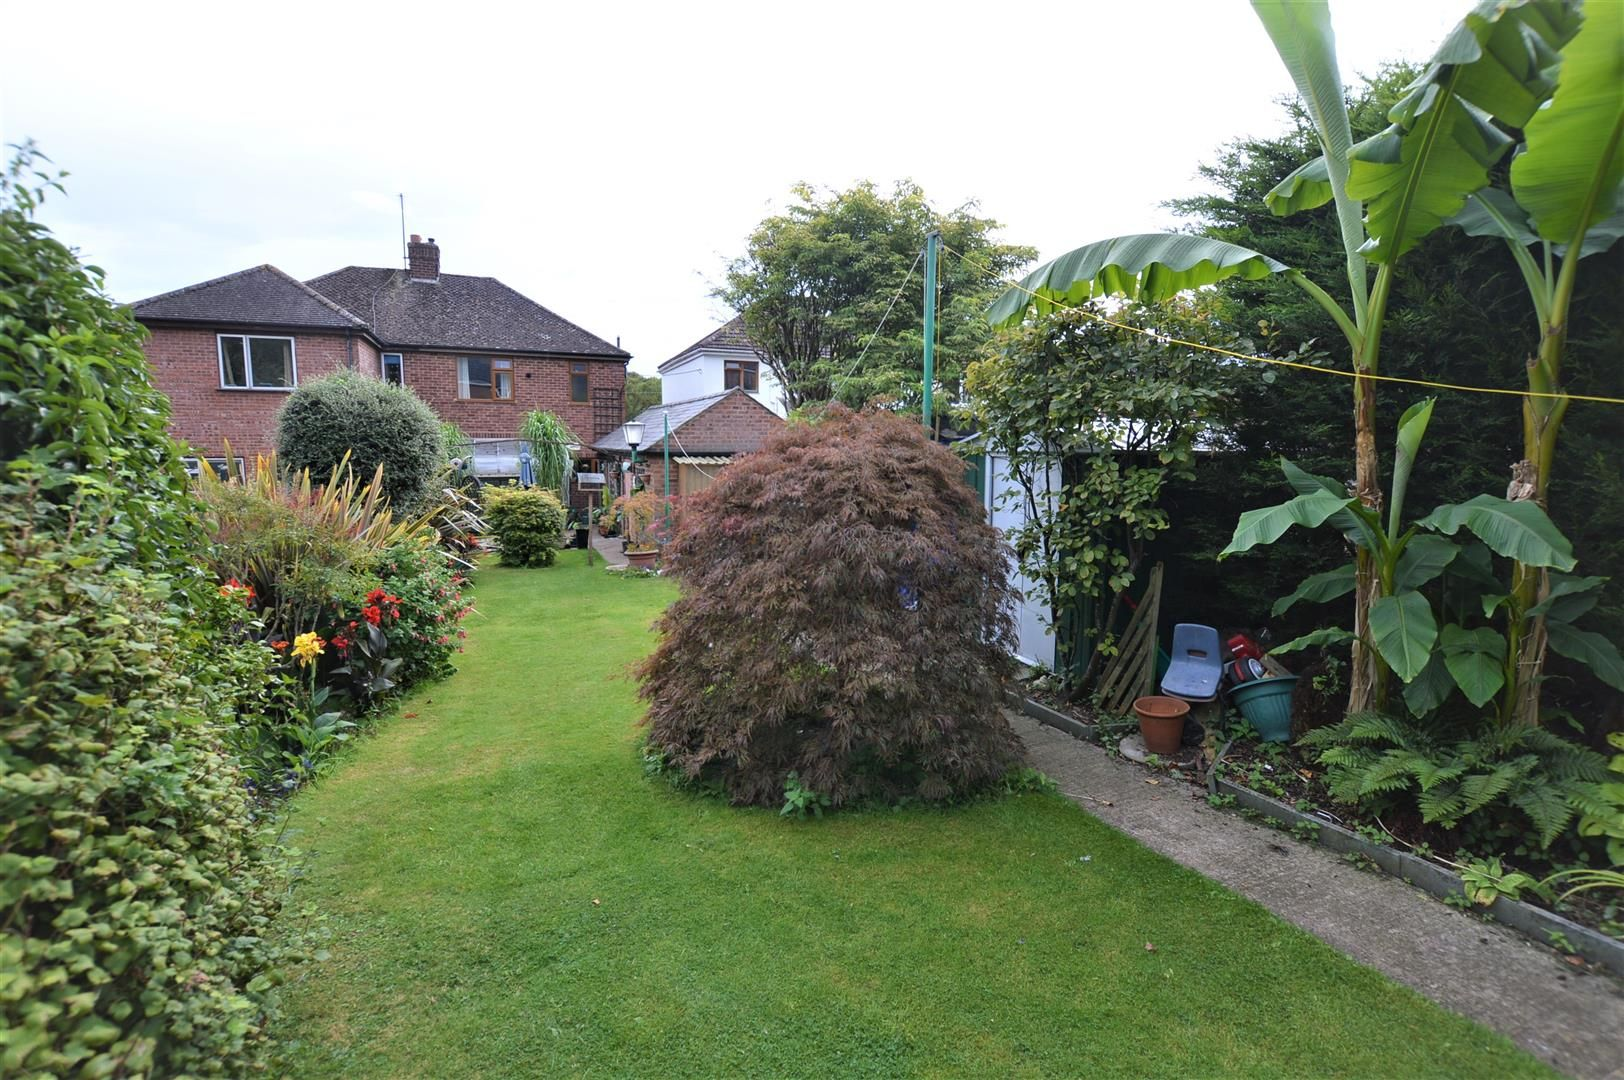 3 bed semi-detached for sale in Hereford 2